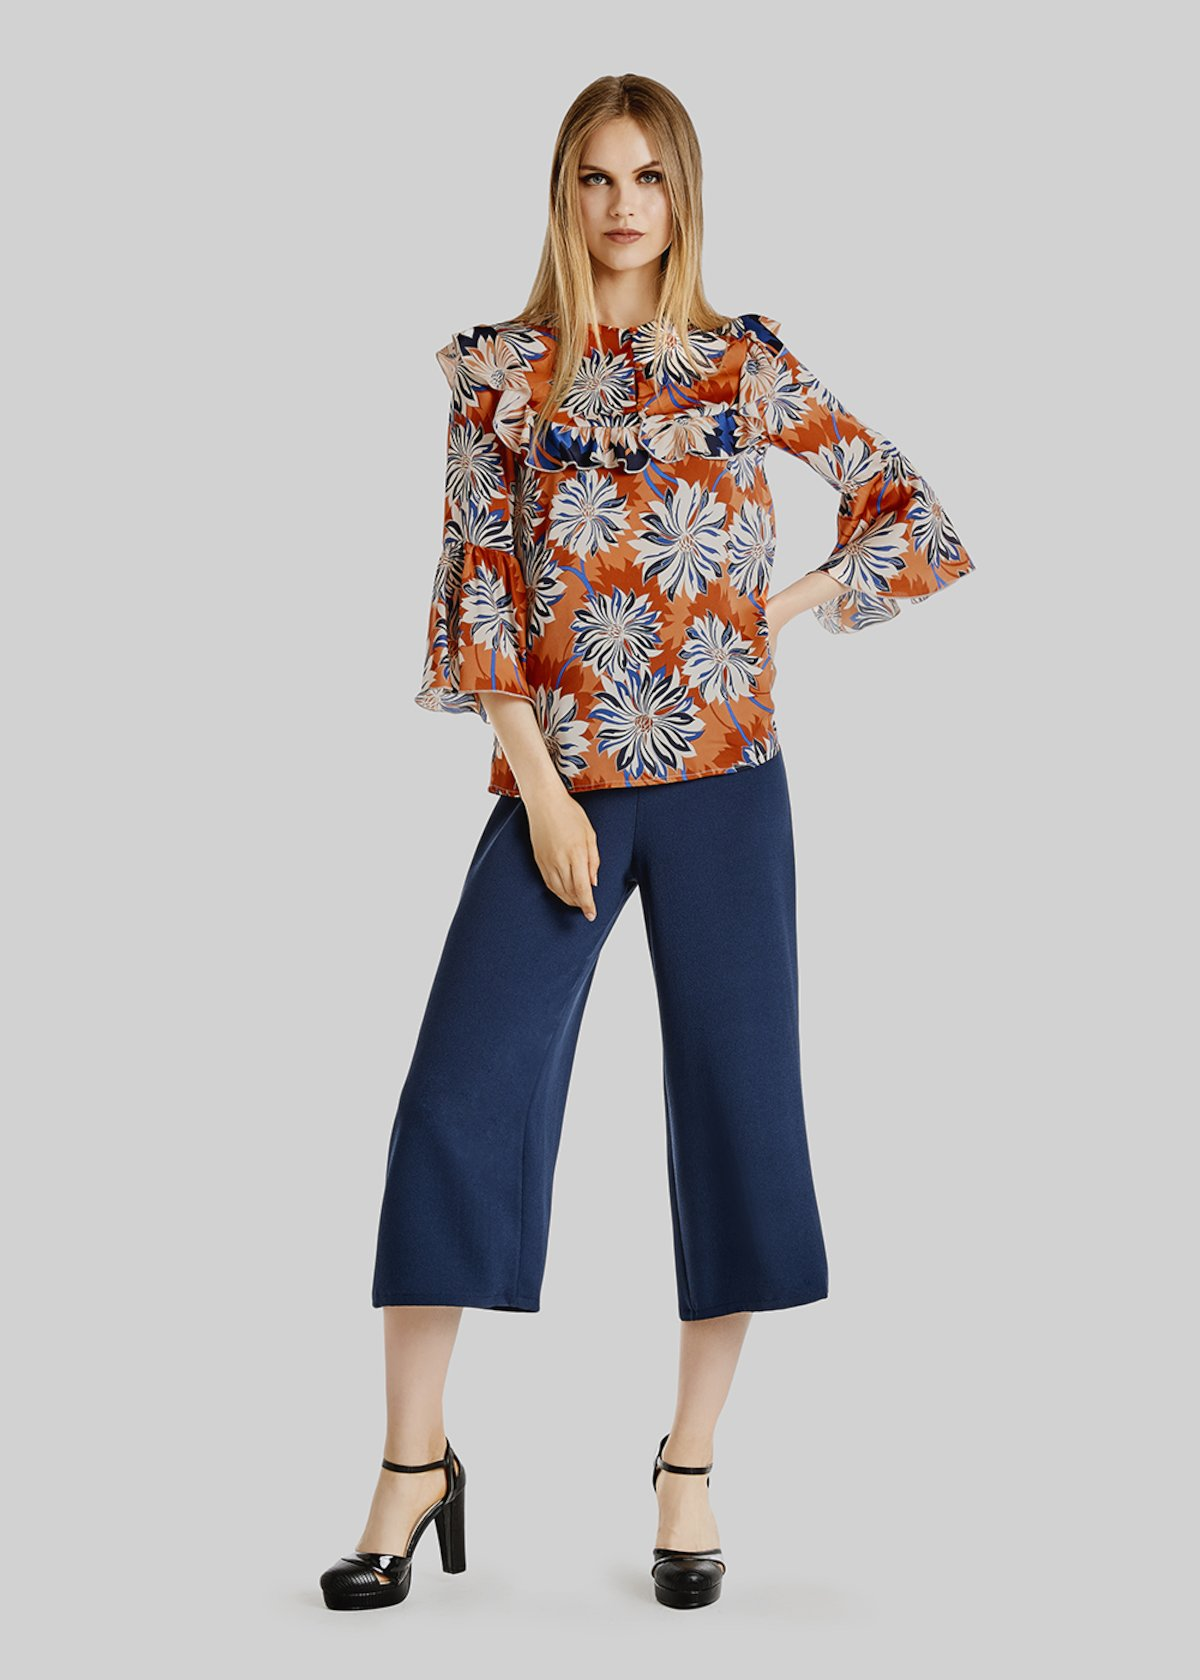 Carina blouse floral fantasy - Lobster / Lapis Fantasia - Woman - Category image